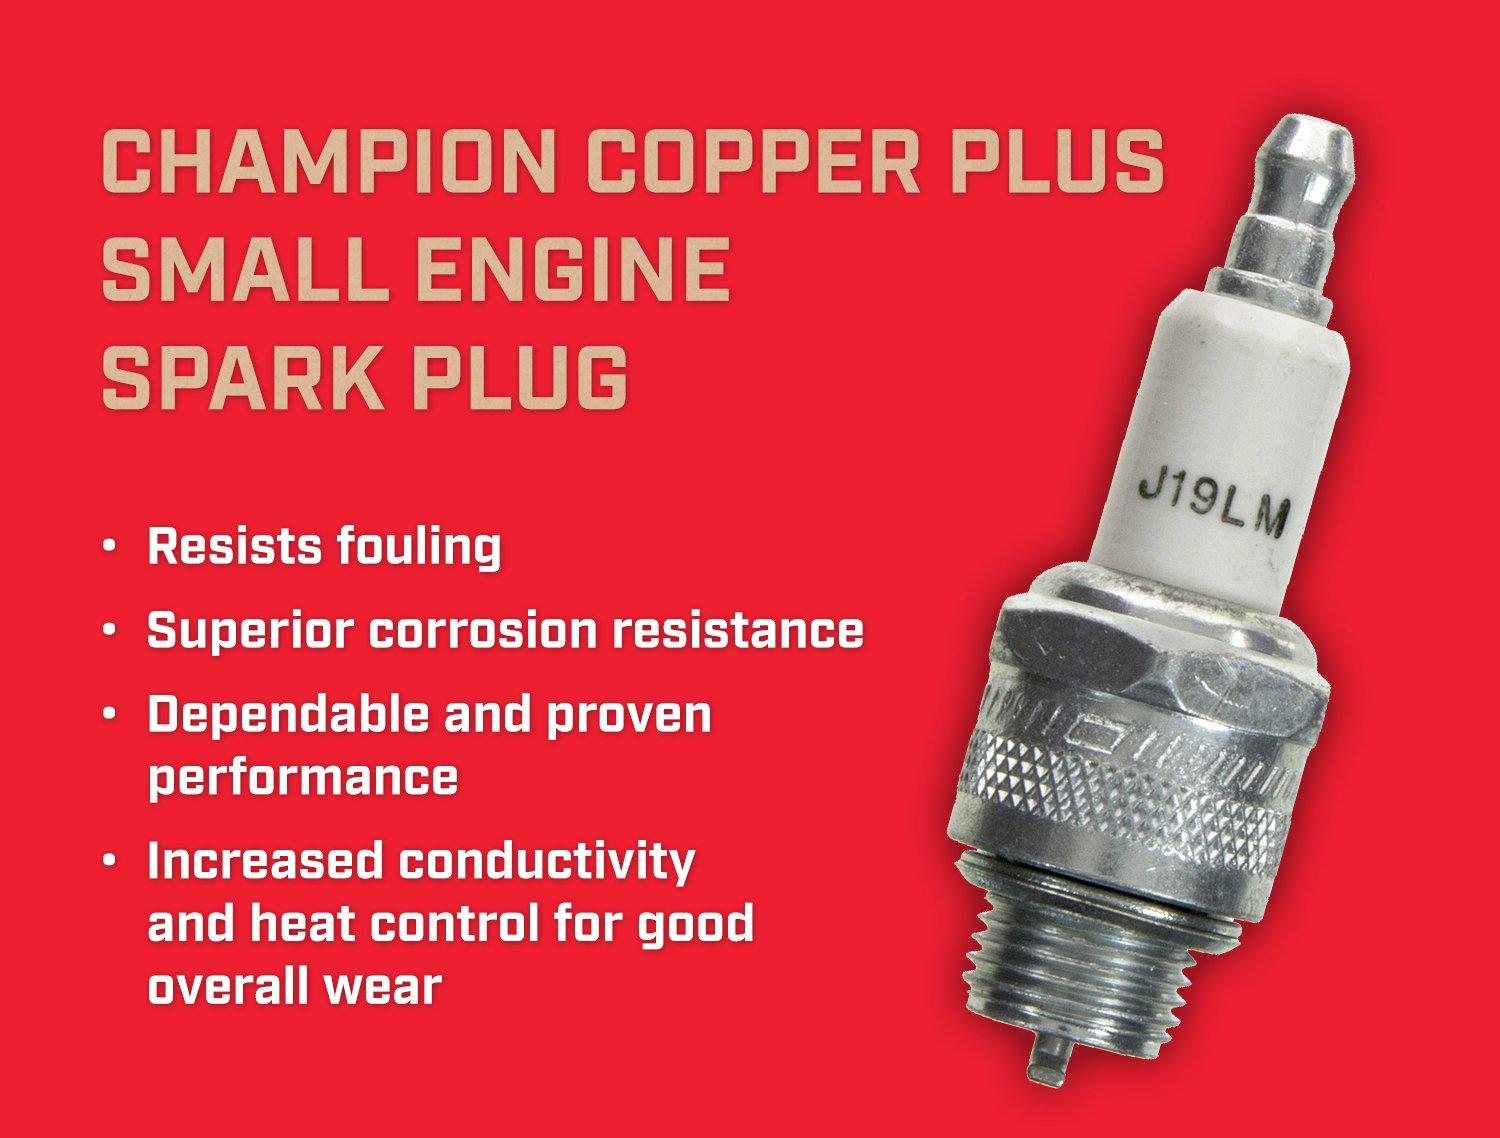 Amazon.com: Champion J19LM (861) Copper Plus Small Engine Replacement Spark Plug (4): Garden & Outdoor